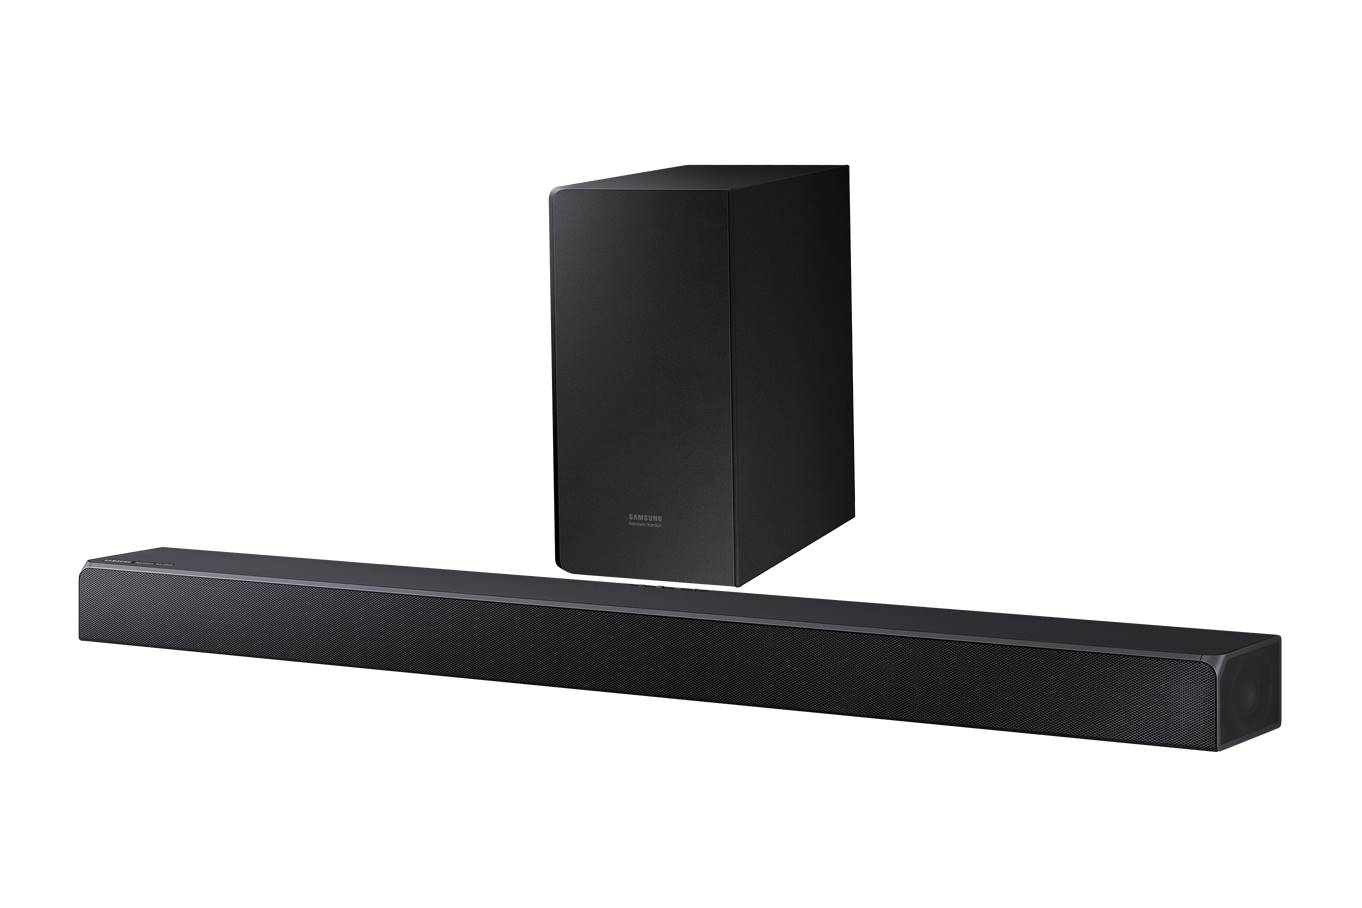 Samsung HW-N850 Soundbar with Dolby Atmos